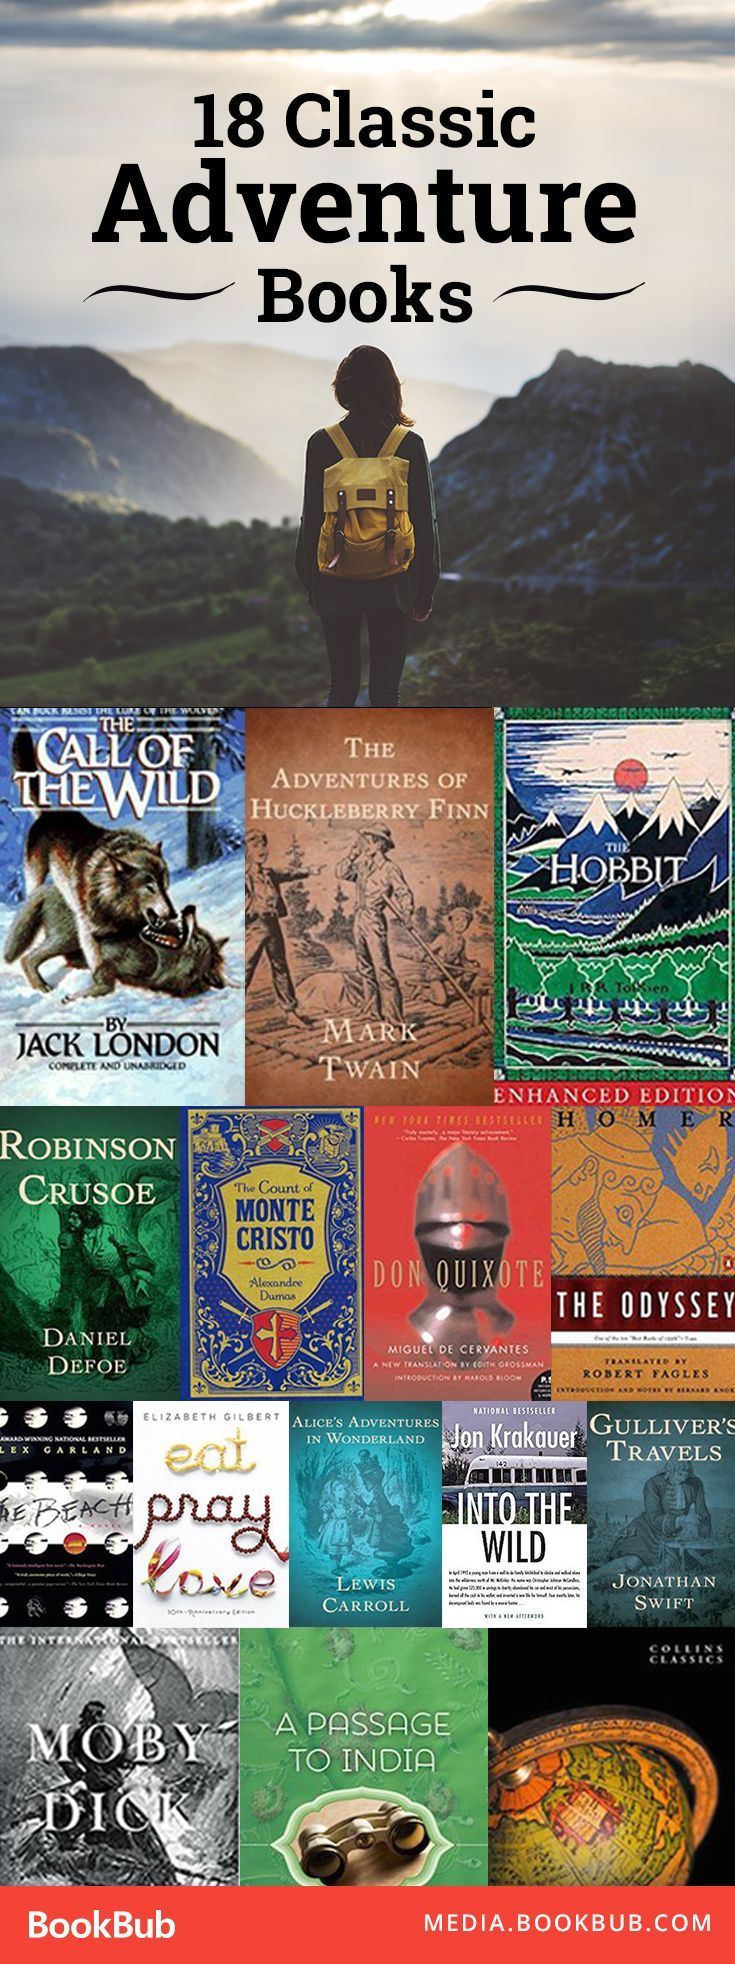 18 classic adventure books that will change your life. Ranging from classics like Huckleberry Finn to recent inspirational books like Eat Pray Love, these novels are worth a read.